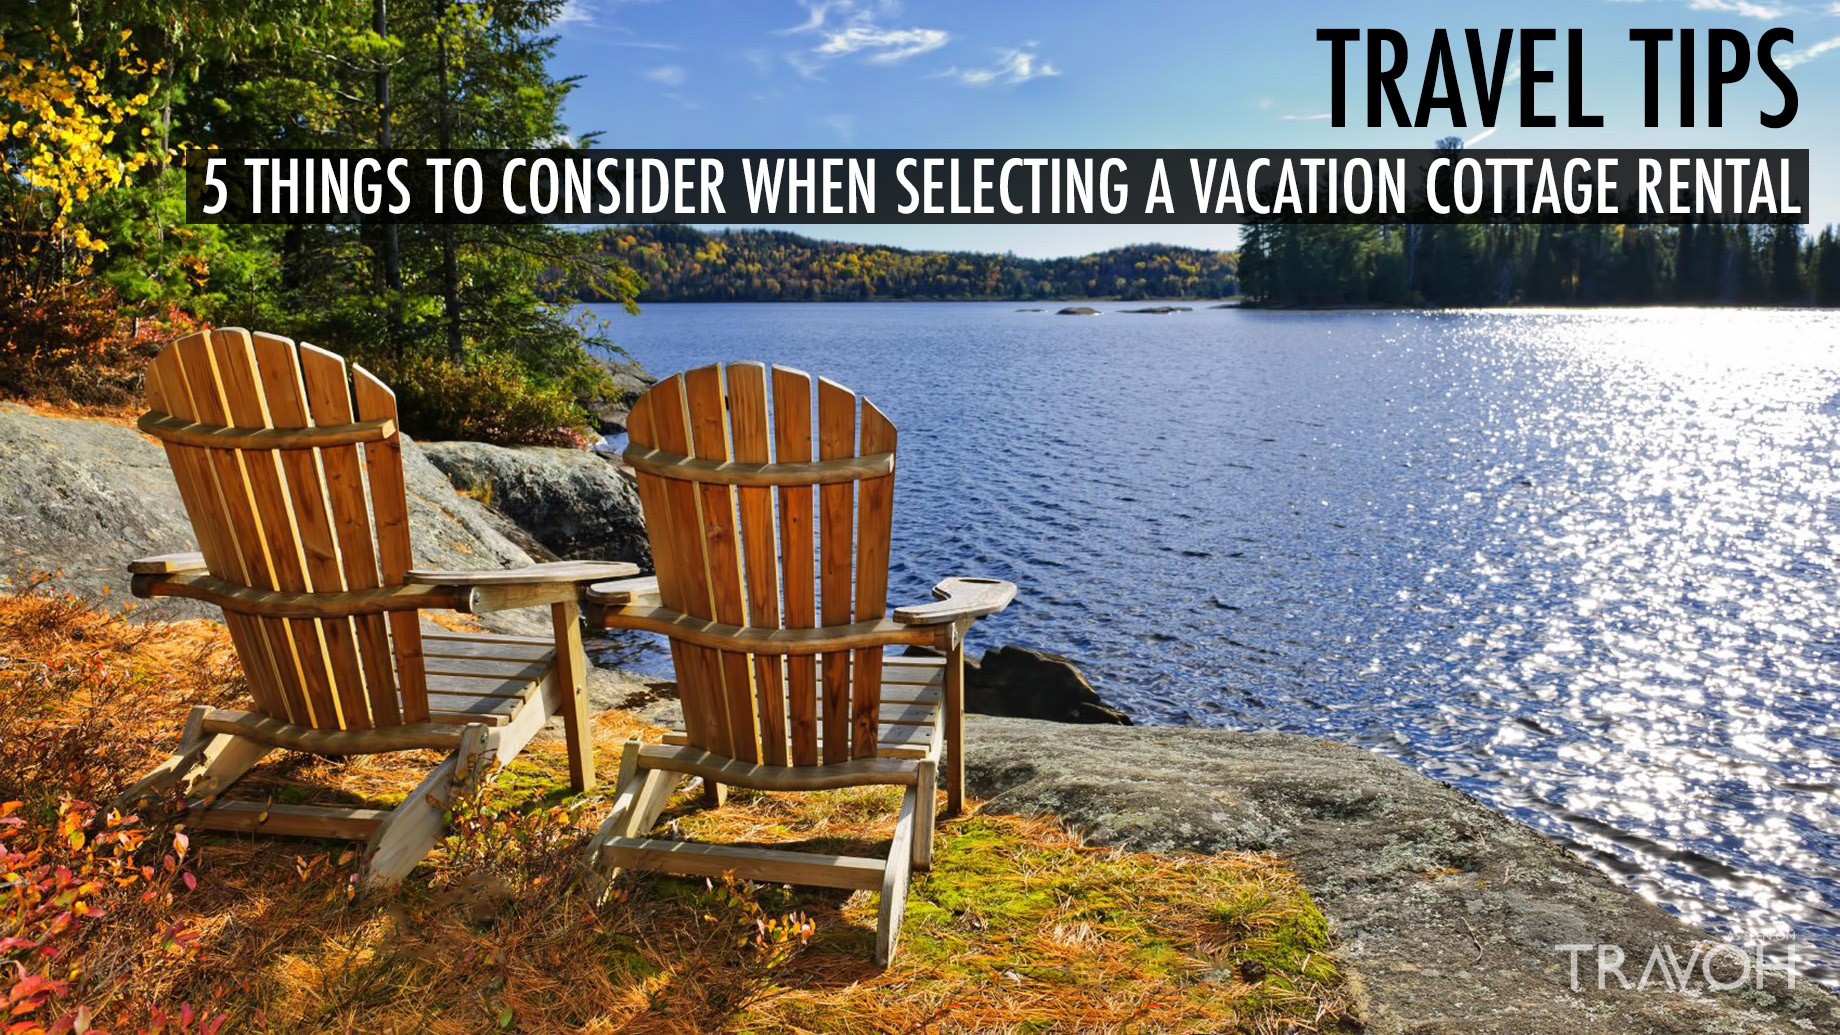 Travel Tips – 5 Things to Consider When Selecting a Vacation Cottage Rental